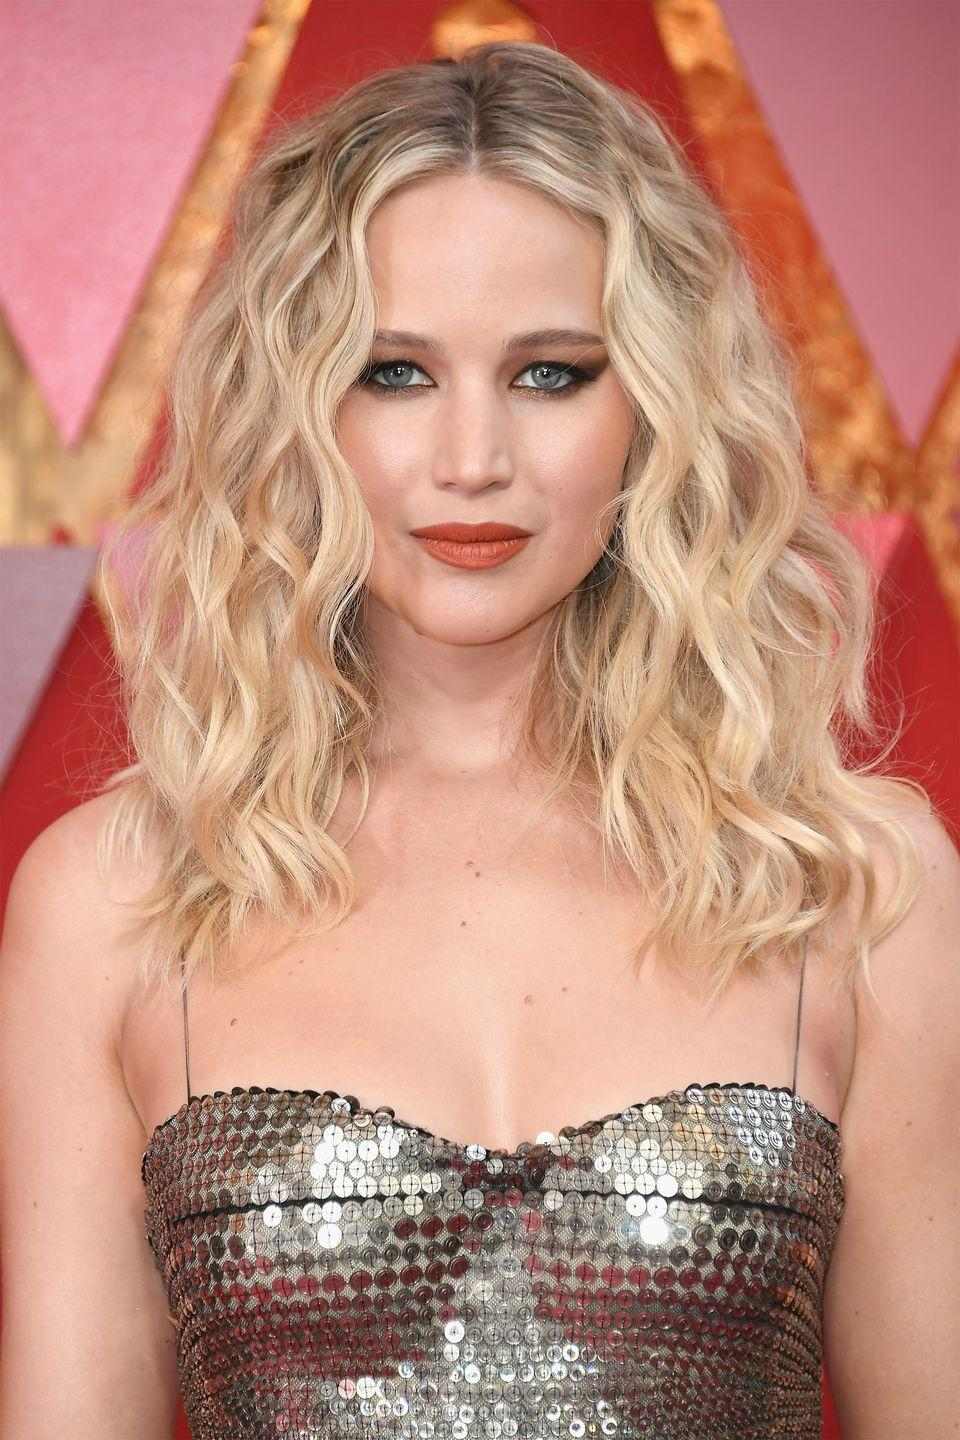 """<p>Lawrence ended her formal education when she was 14 and <a href=""""https://www.harpersbazaar.com/celebrity/latest/a18699077/jennifer-lawrence-dropped-out-middle-school/"""" rel=""""nofollow noopener"""" target=""""_blank"""" data-ylk=""""slk:dropped out of middle school"""" class=""""link rapid-noclick-resp"""">dropped out of middle school</a>.</p><p>""""I dropped out of middle school. I don't technically have a GED or a diploma,""""she explained during a <em>60 Minutes</em> interview. """"I am self-educated.""""</p>"""